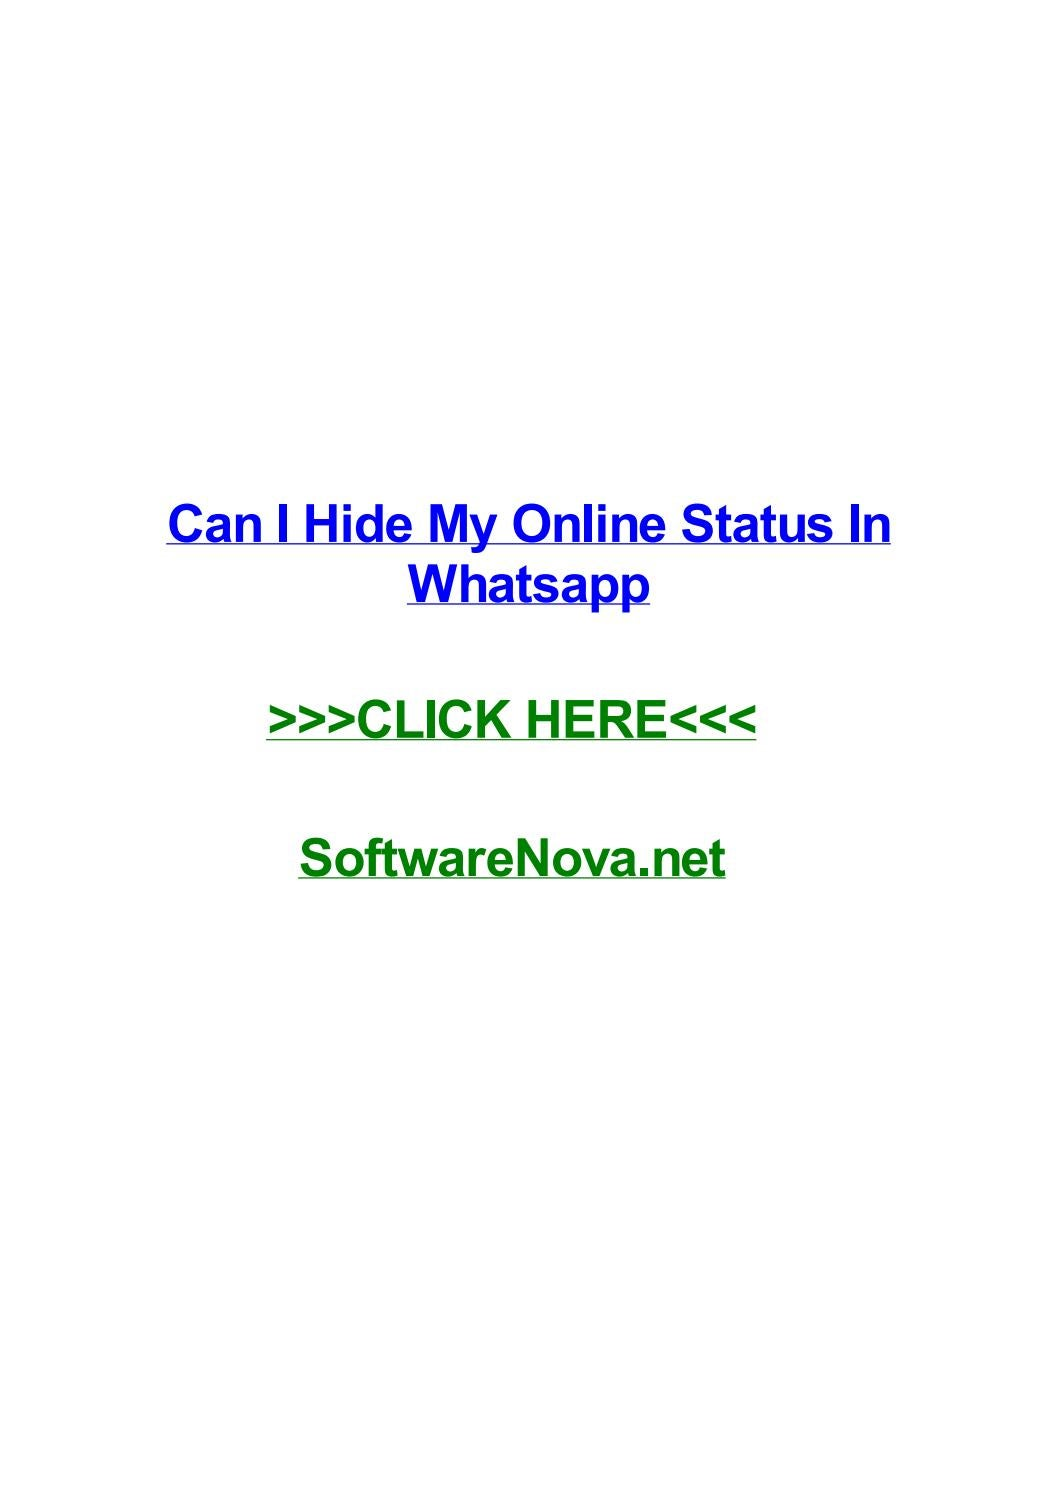 Embed Can I Hide My Online Status In Whatsapp